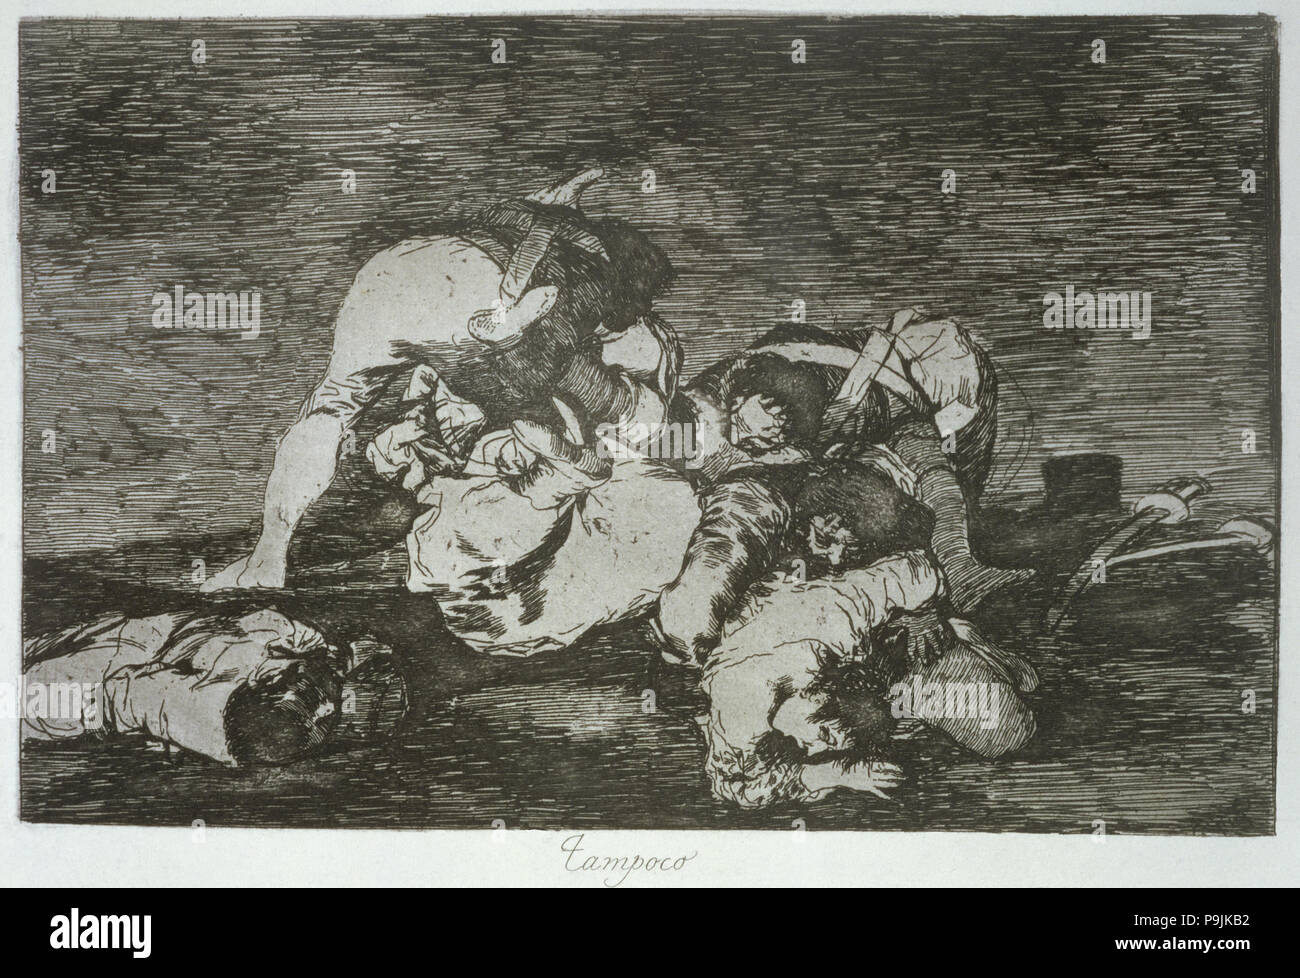 The Disasters of War, a series of etchings by Francisco de Goya (1746-1828), plate 10 (printed 36… Stock Photo